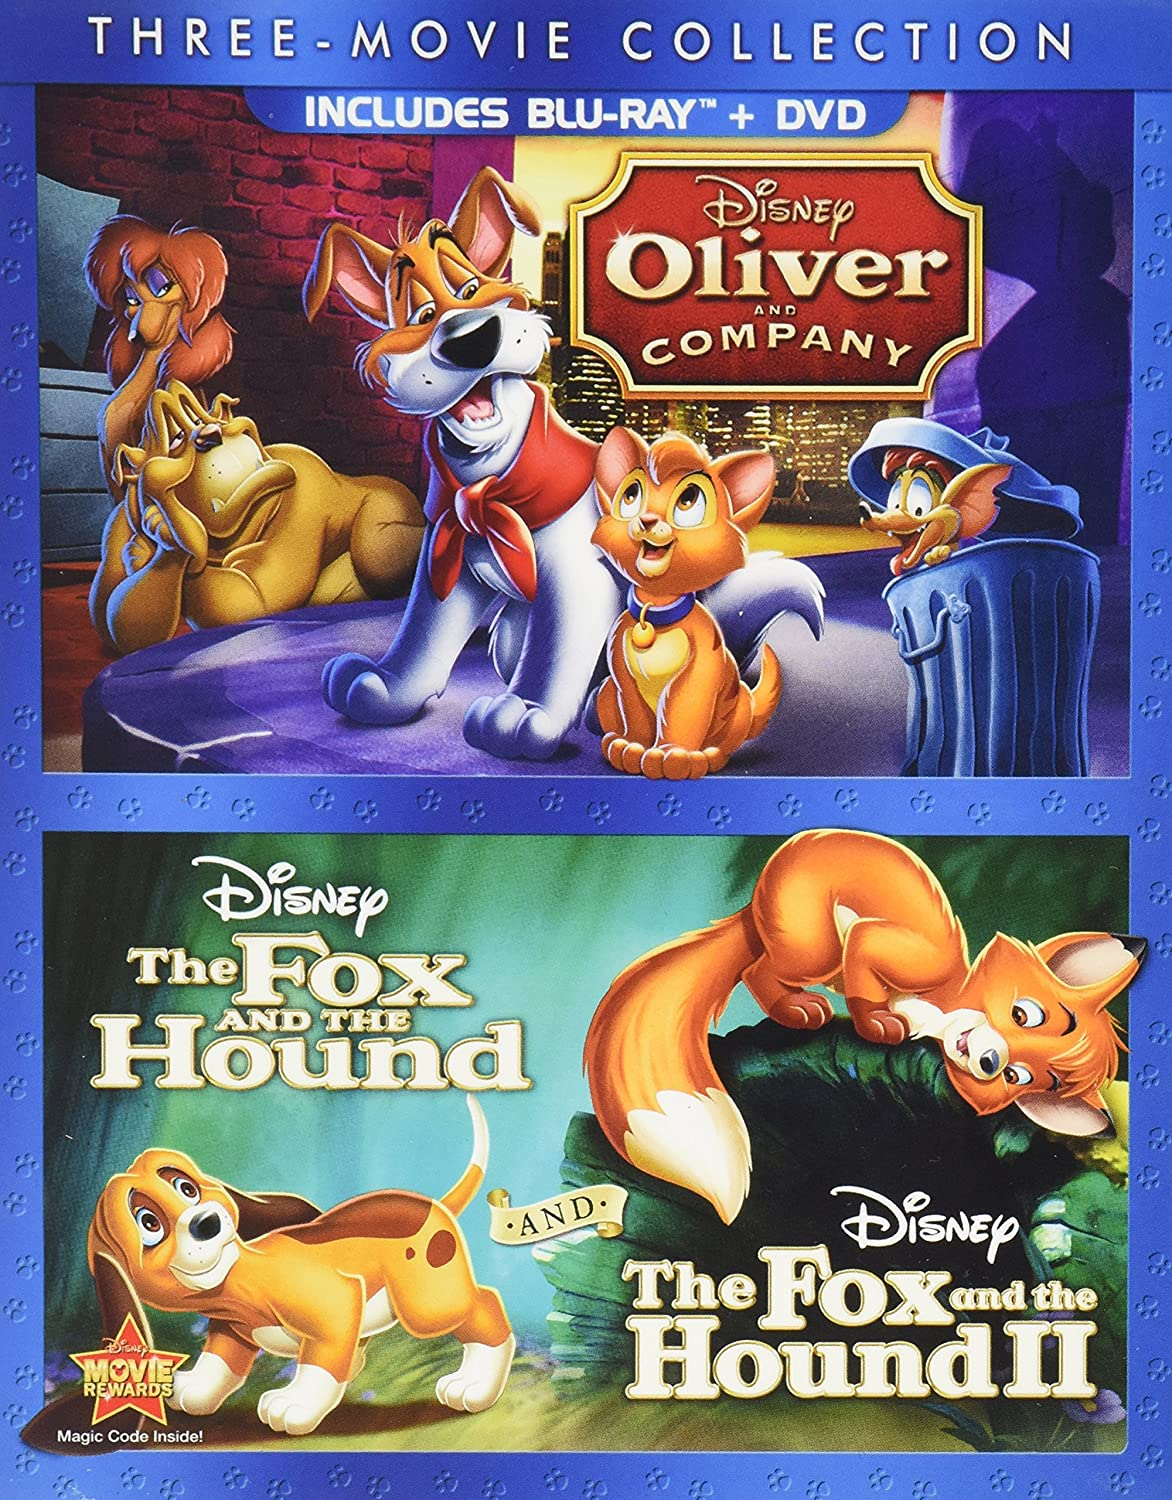 amazon com disney three movie collection oliver and company